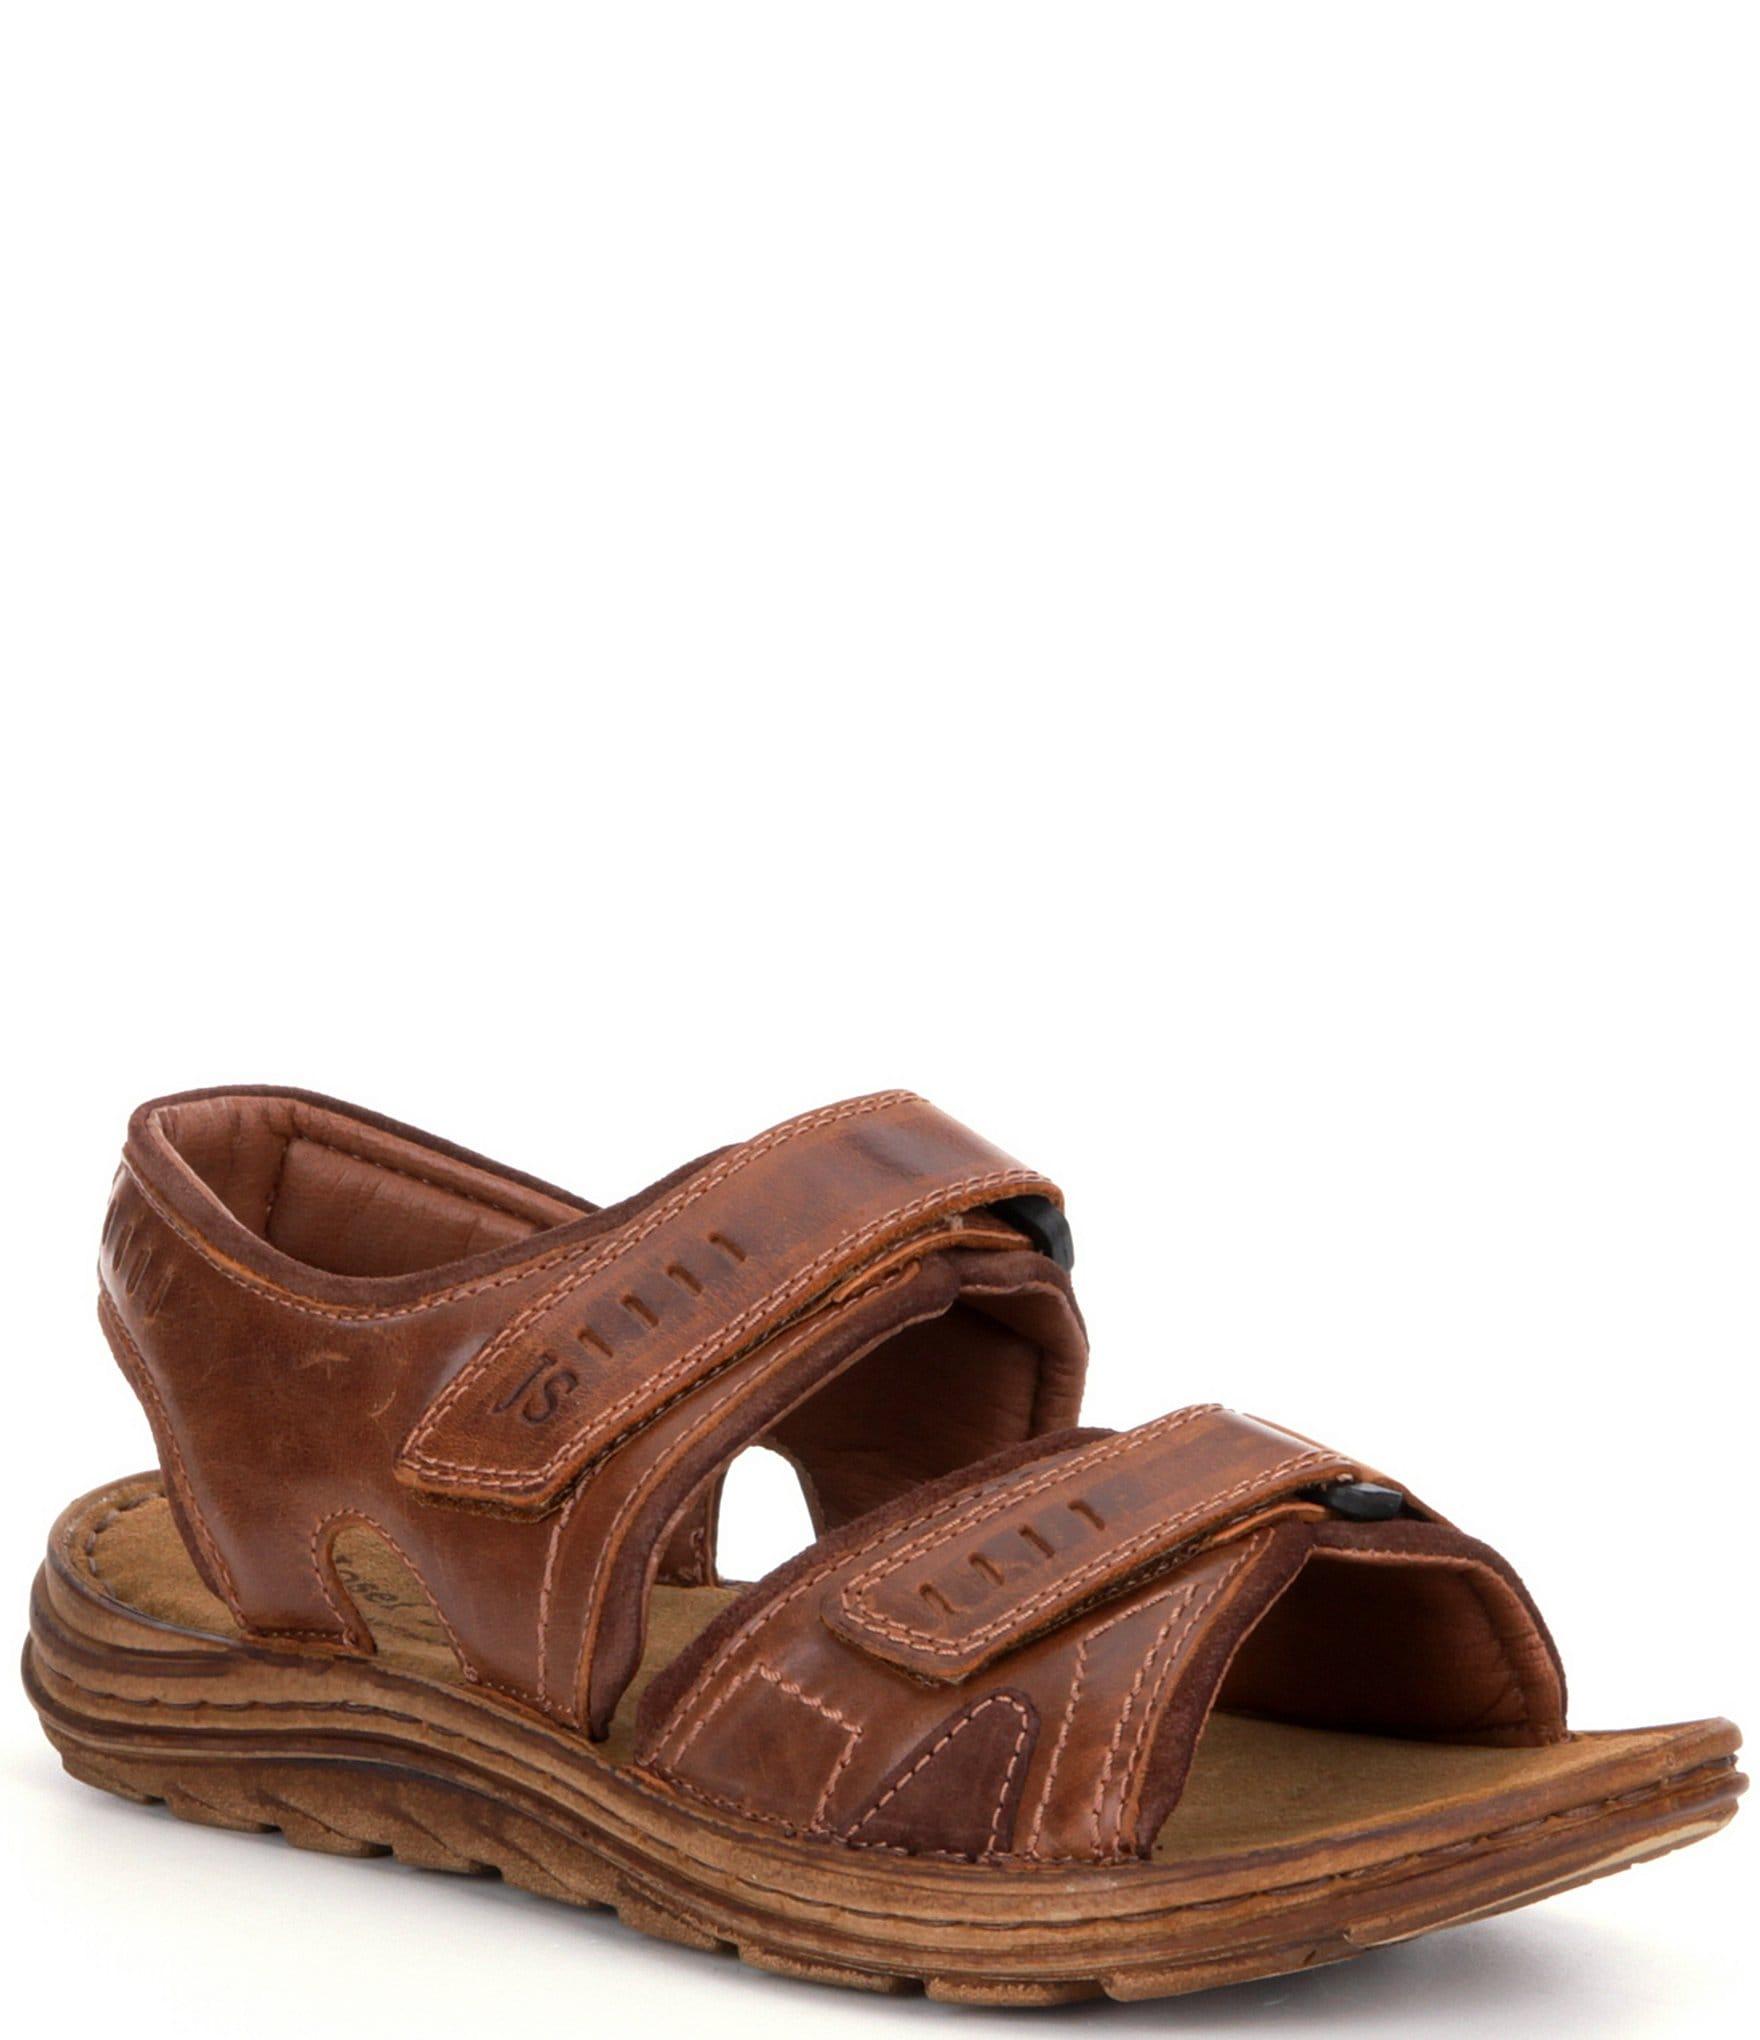 93aa18d6f Josef Seibel Men s Raul 19 Sandals